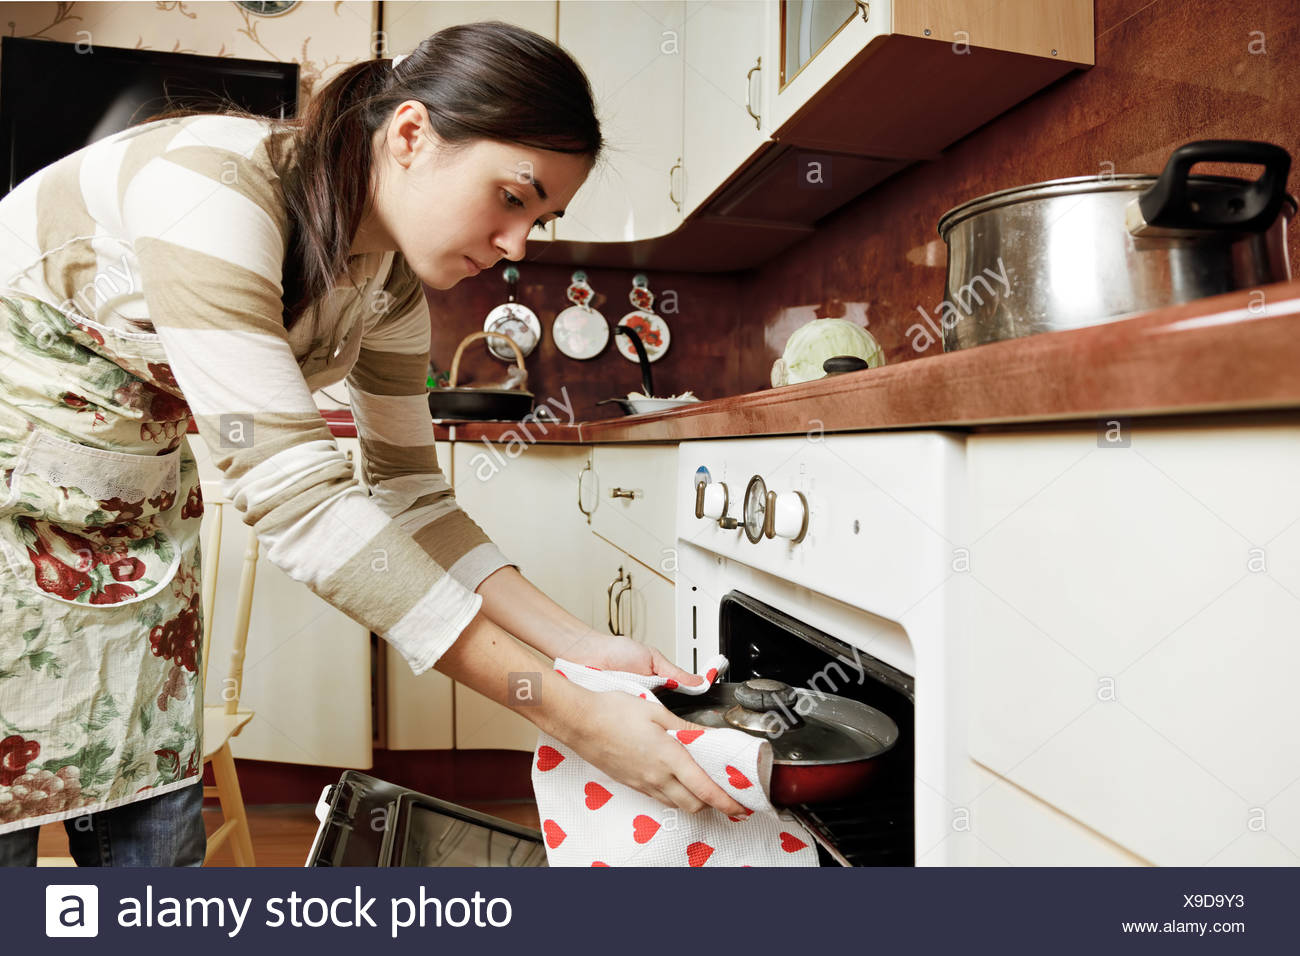 Housewife taking frying pan from oven Stock Photo